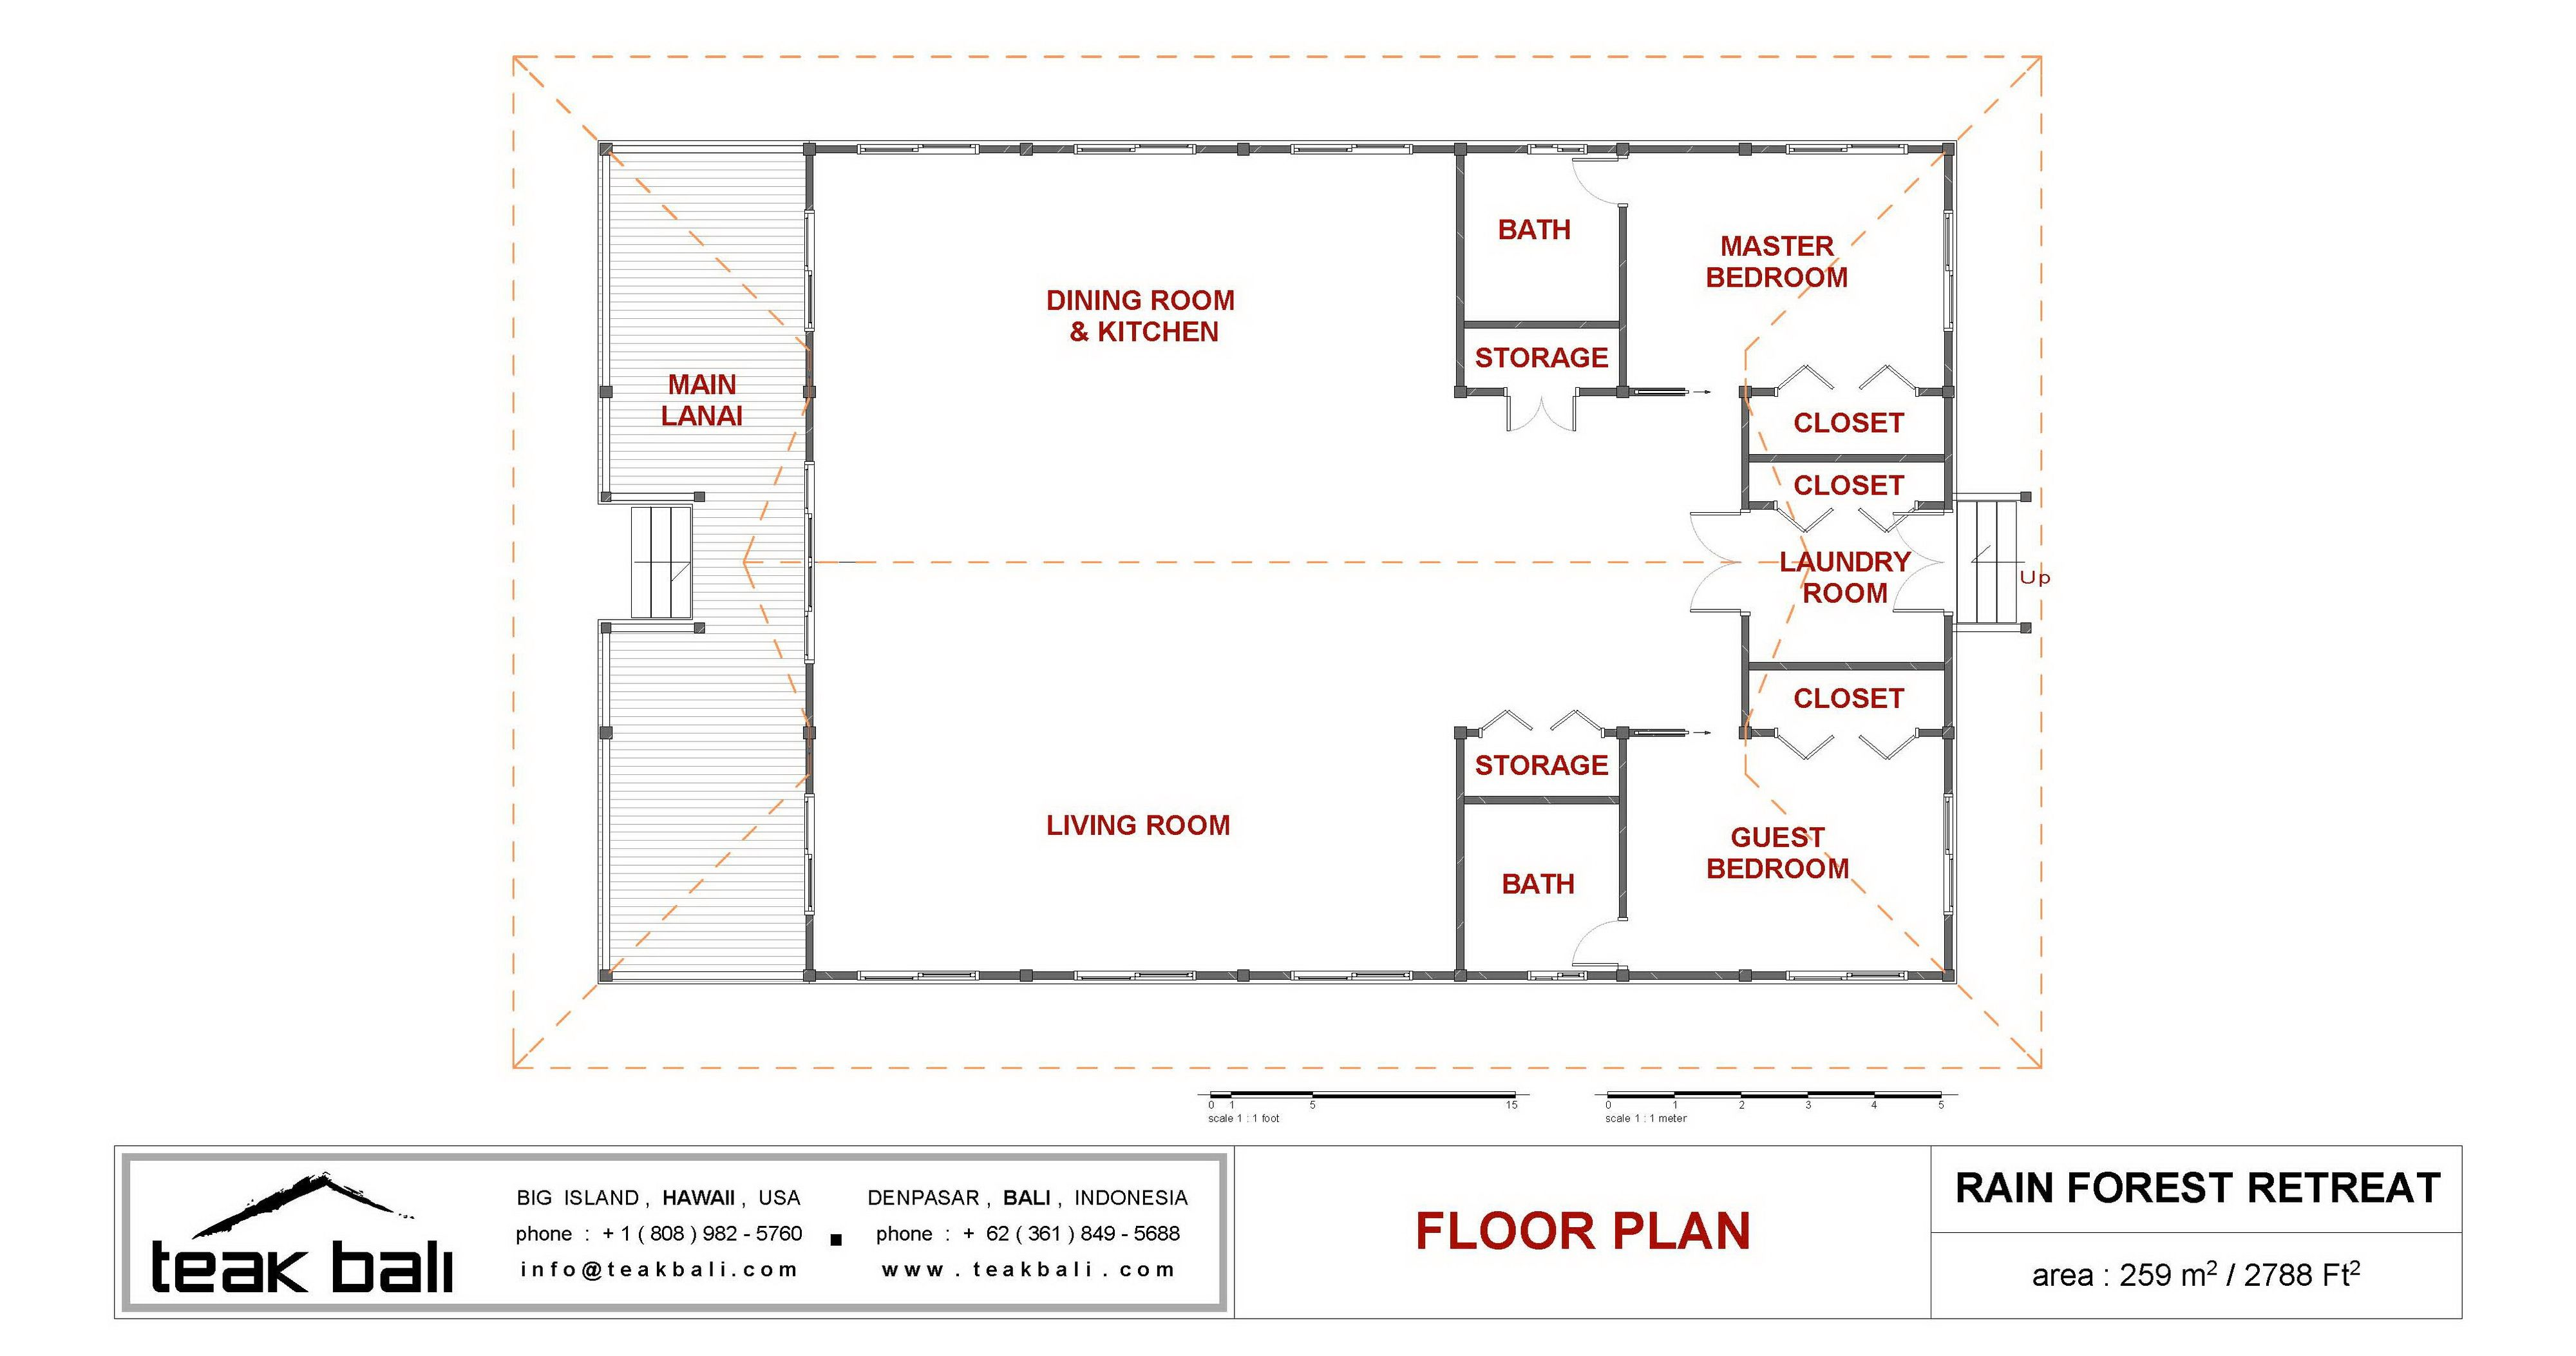 Bali Floor Plans One Of The Largest Structures In The Teak Bali Product Line With A Demonstrative Lanai An Floor Plans Prefab Modular Homes Floor Plan Design